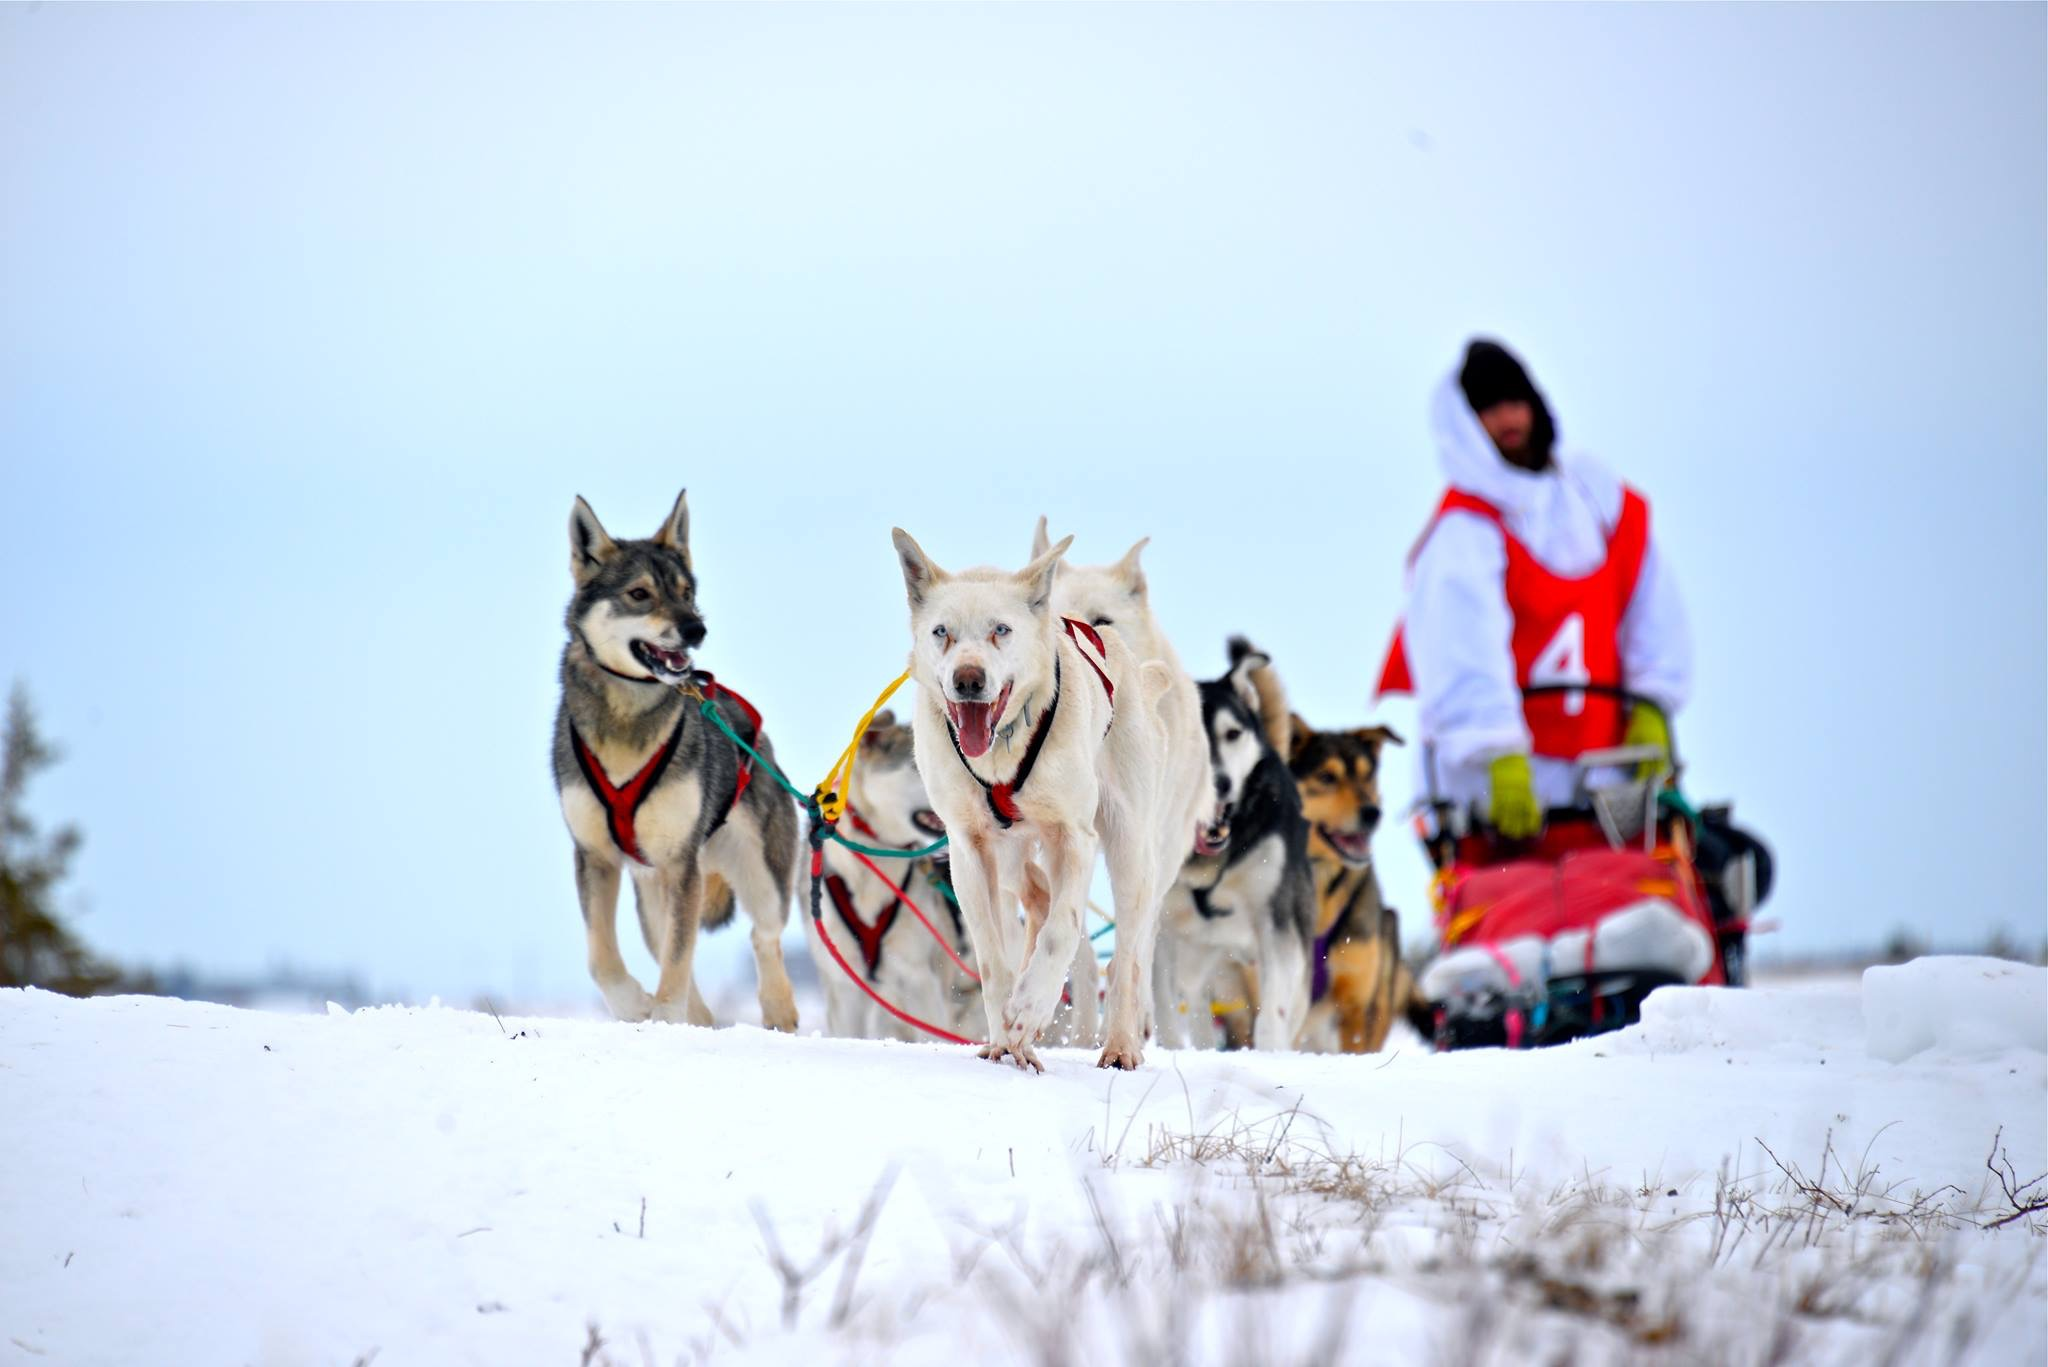 Justin Allen has spent the past five years learning the art of dogsledding from an indigenous teacher.